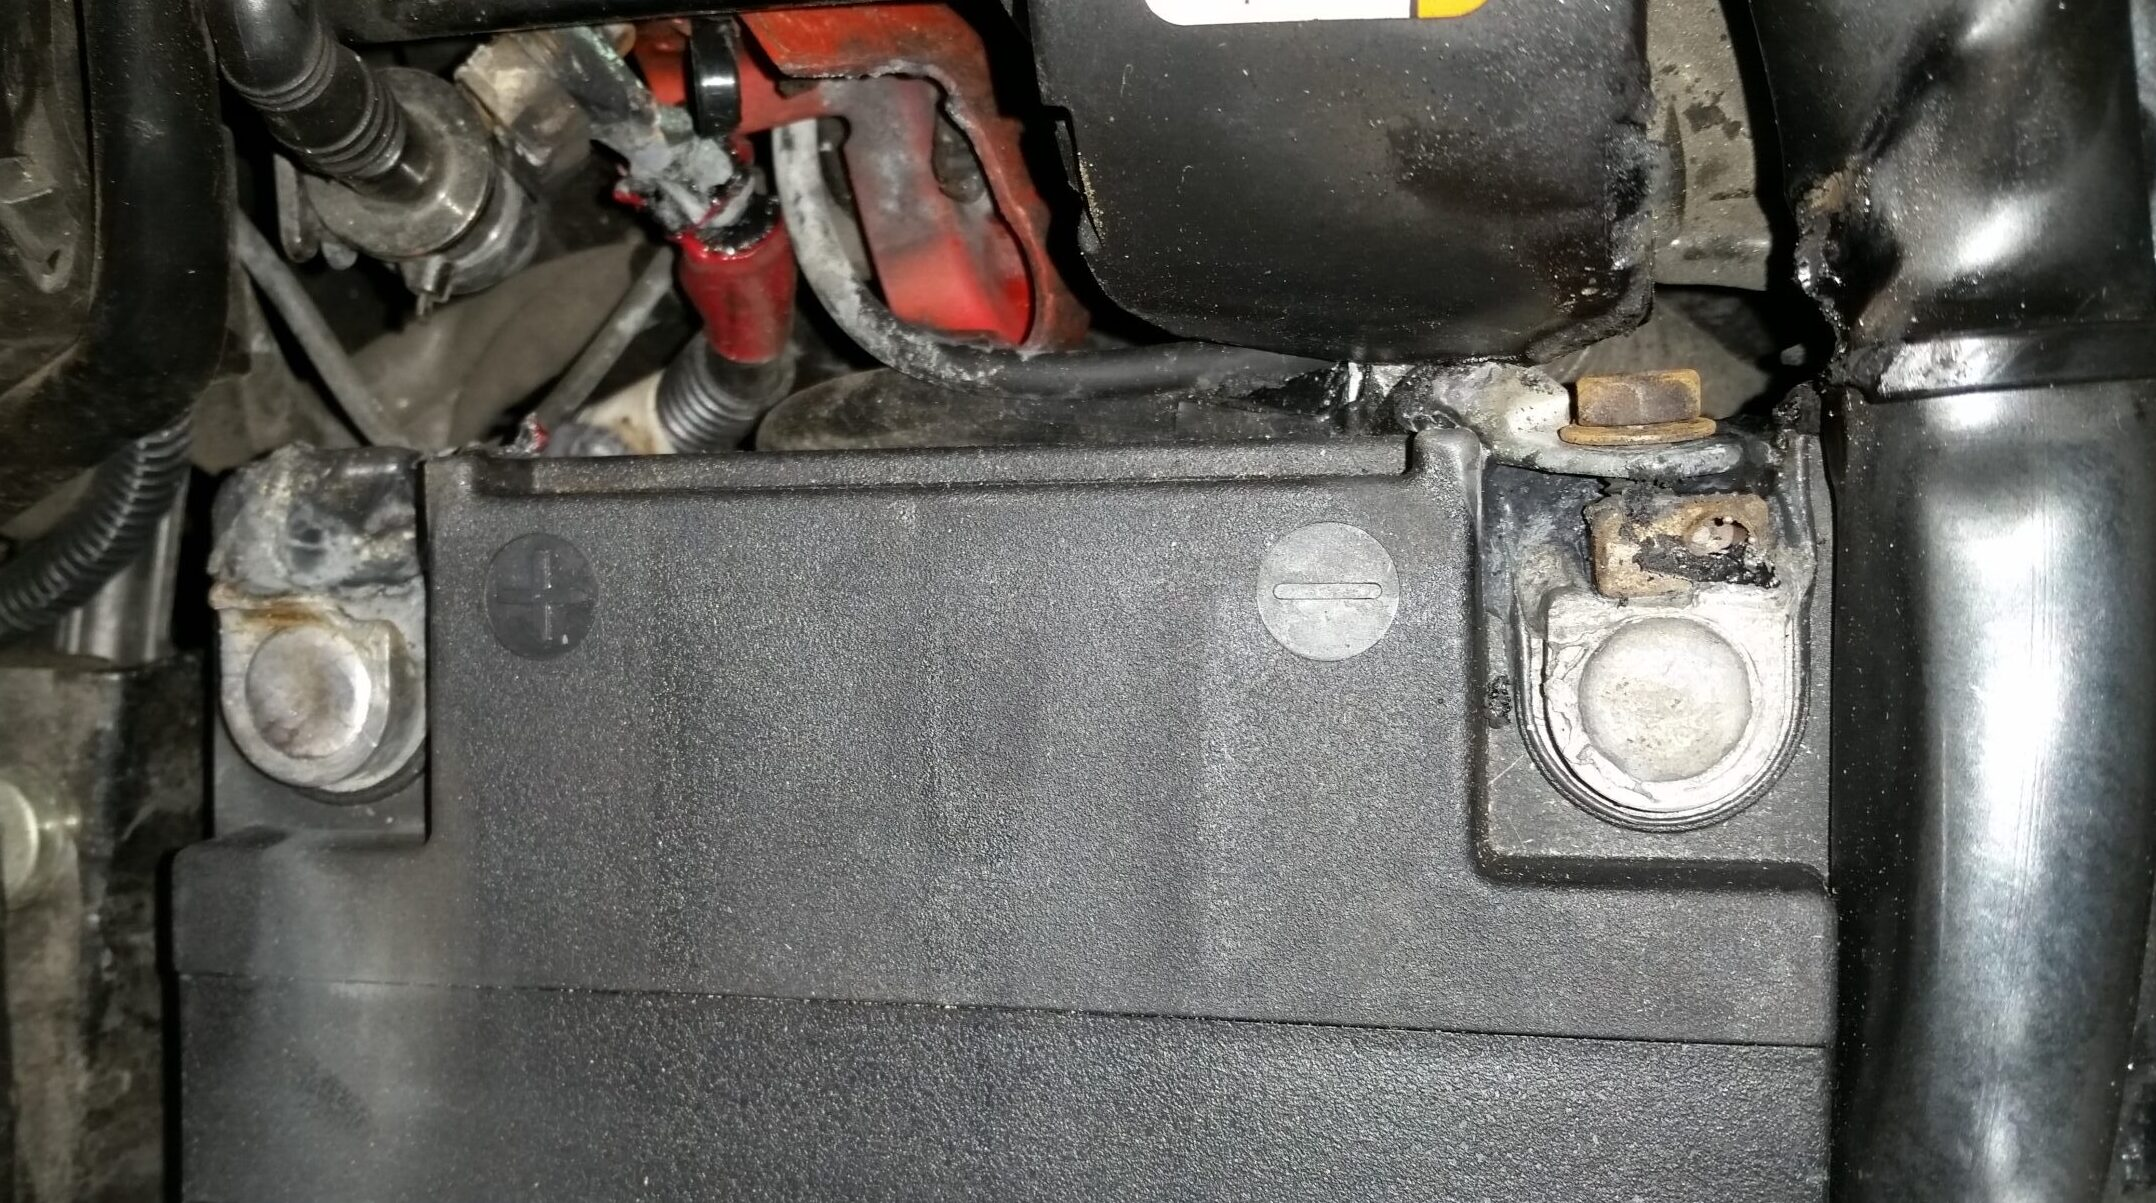 Battery installed without spacers melted down both battery terminals